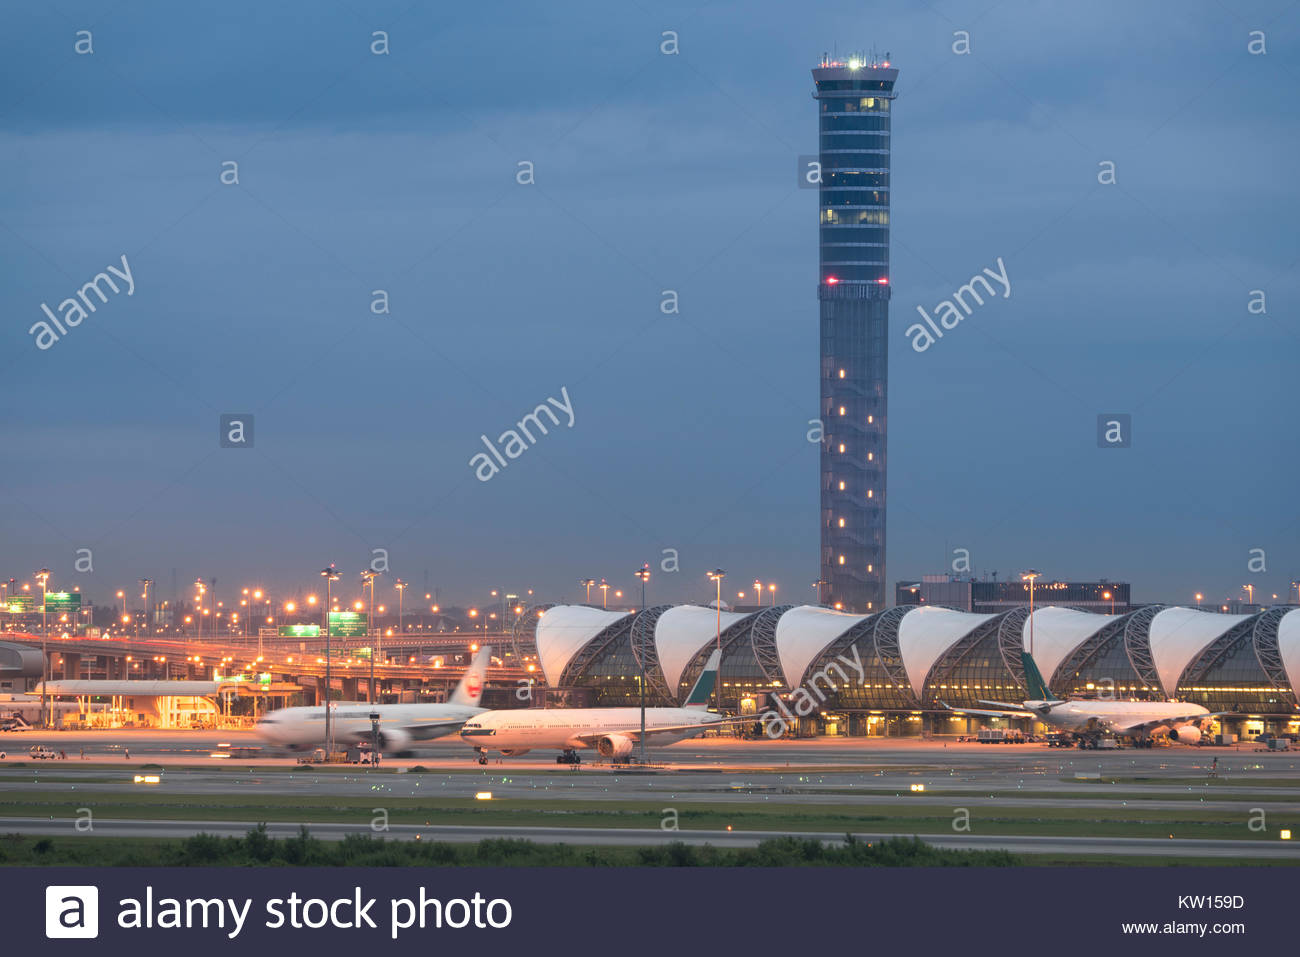 On 22 October 2017 Suvarnabhumi Airport two international airports serving Bangkok, Thailand - Stock Image